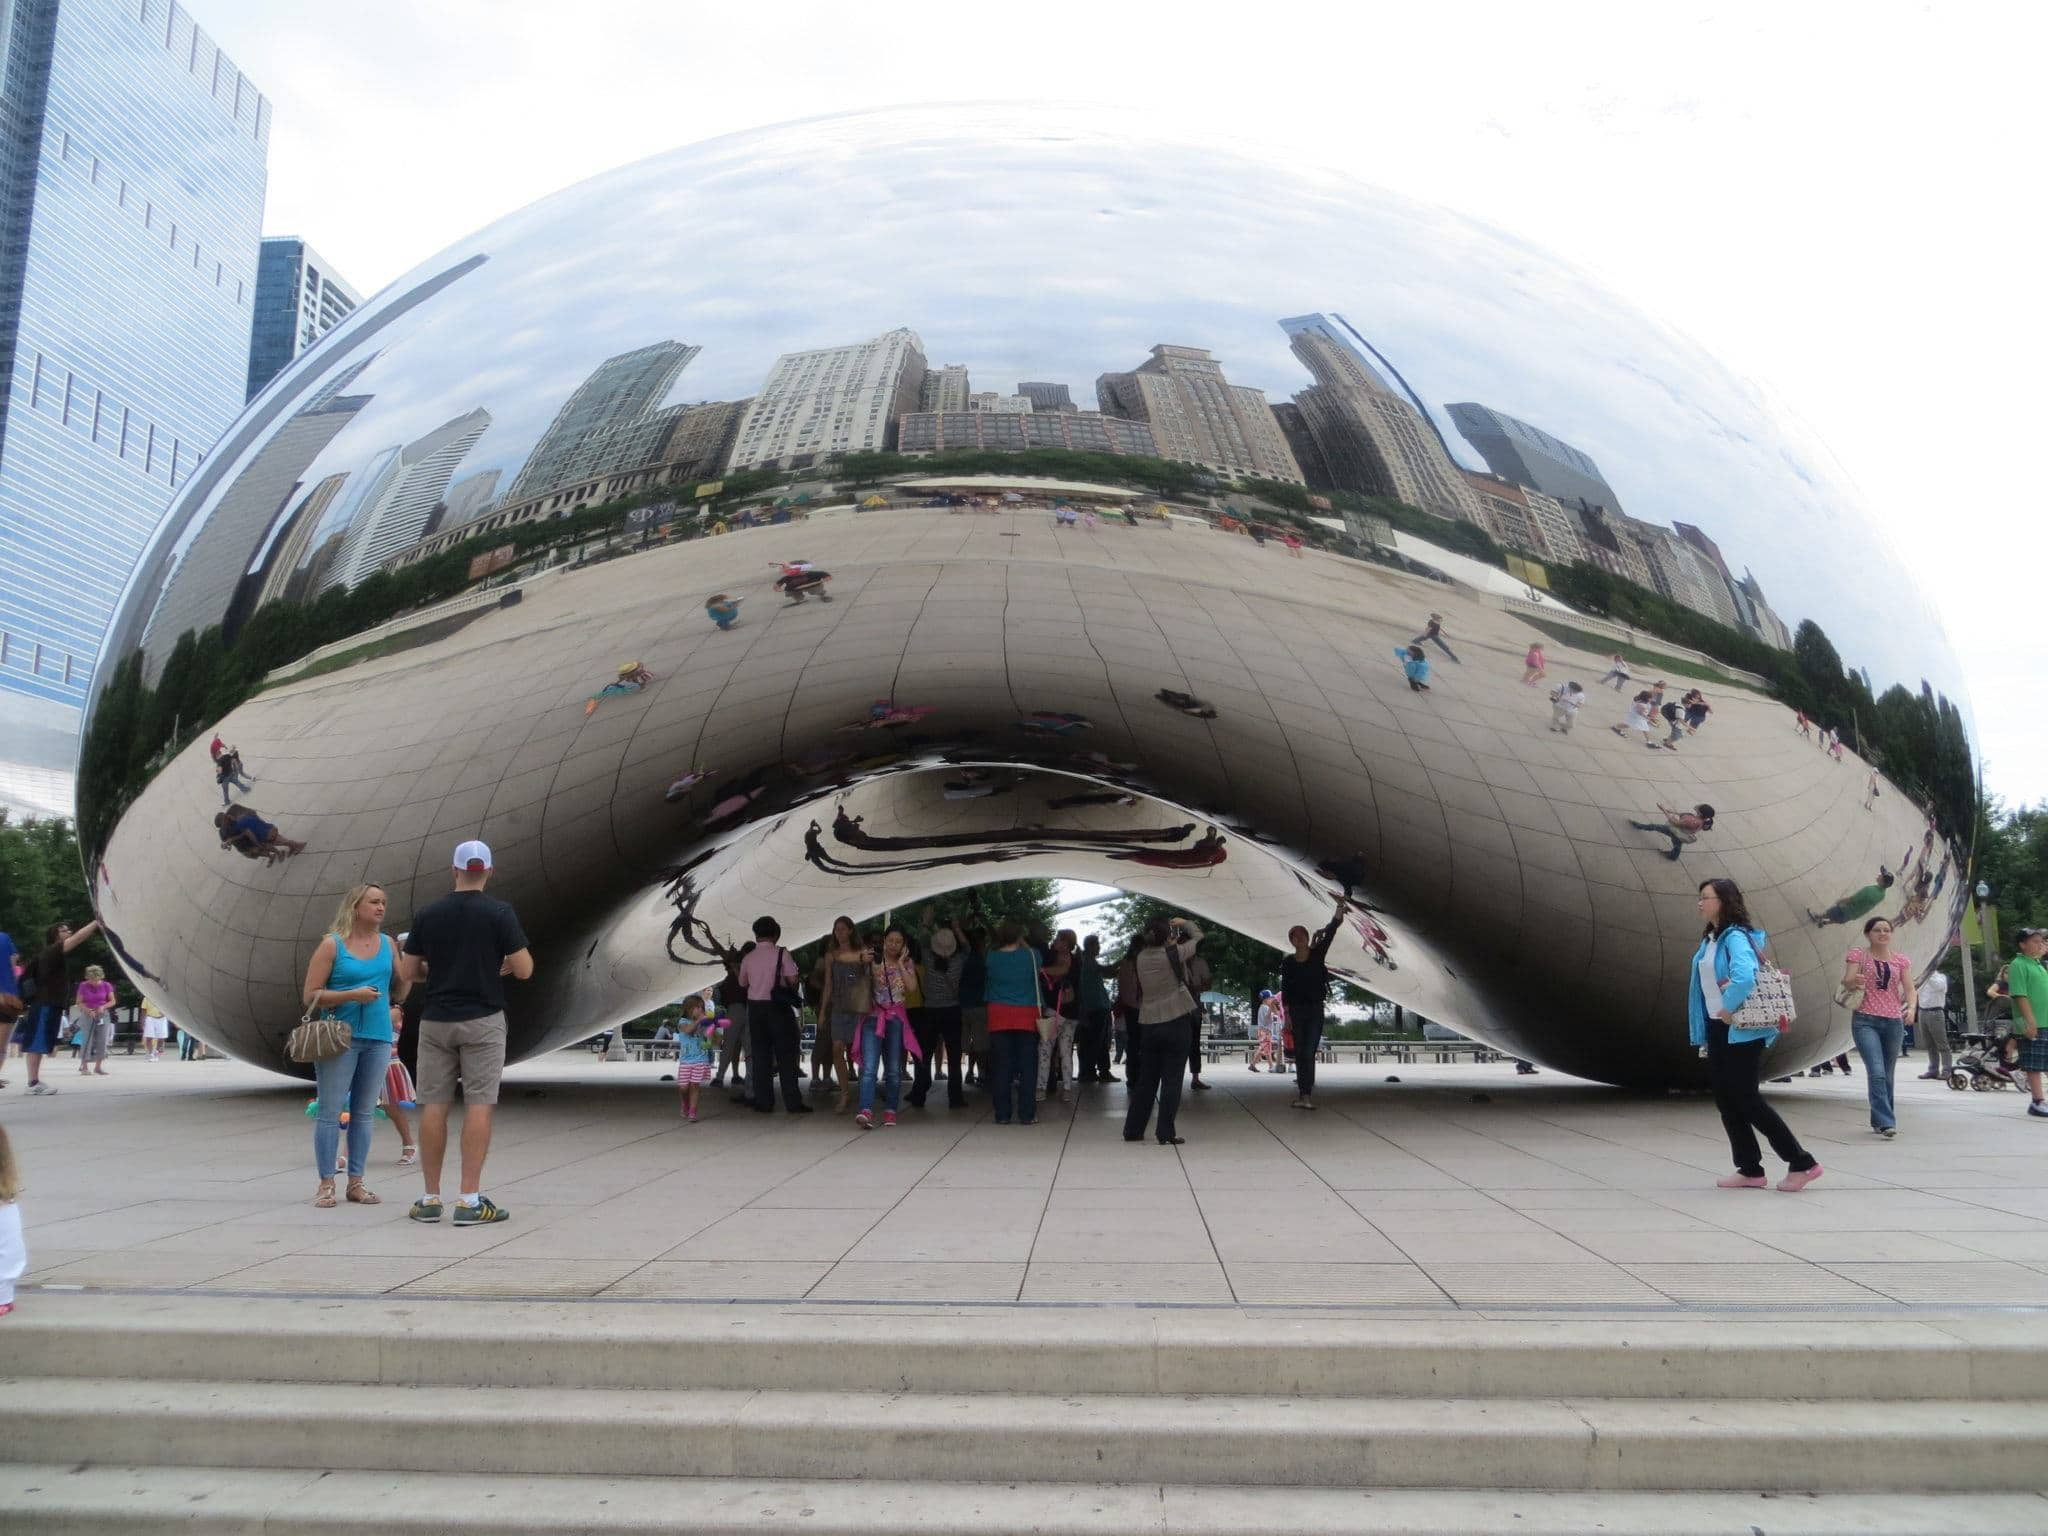 Cloud Gate (a.k.a. The Bean) in Millennium Park